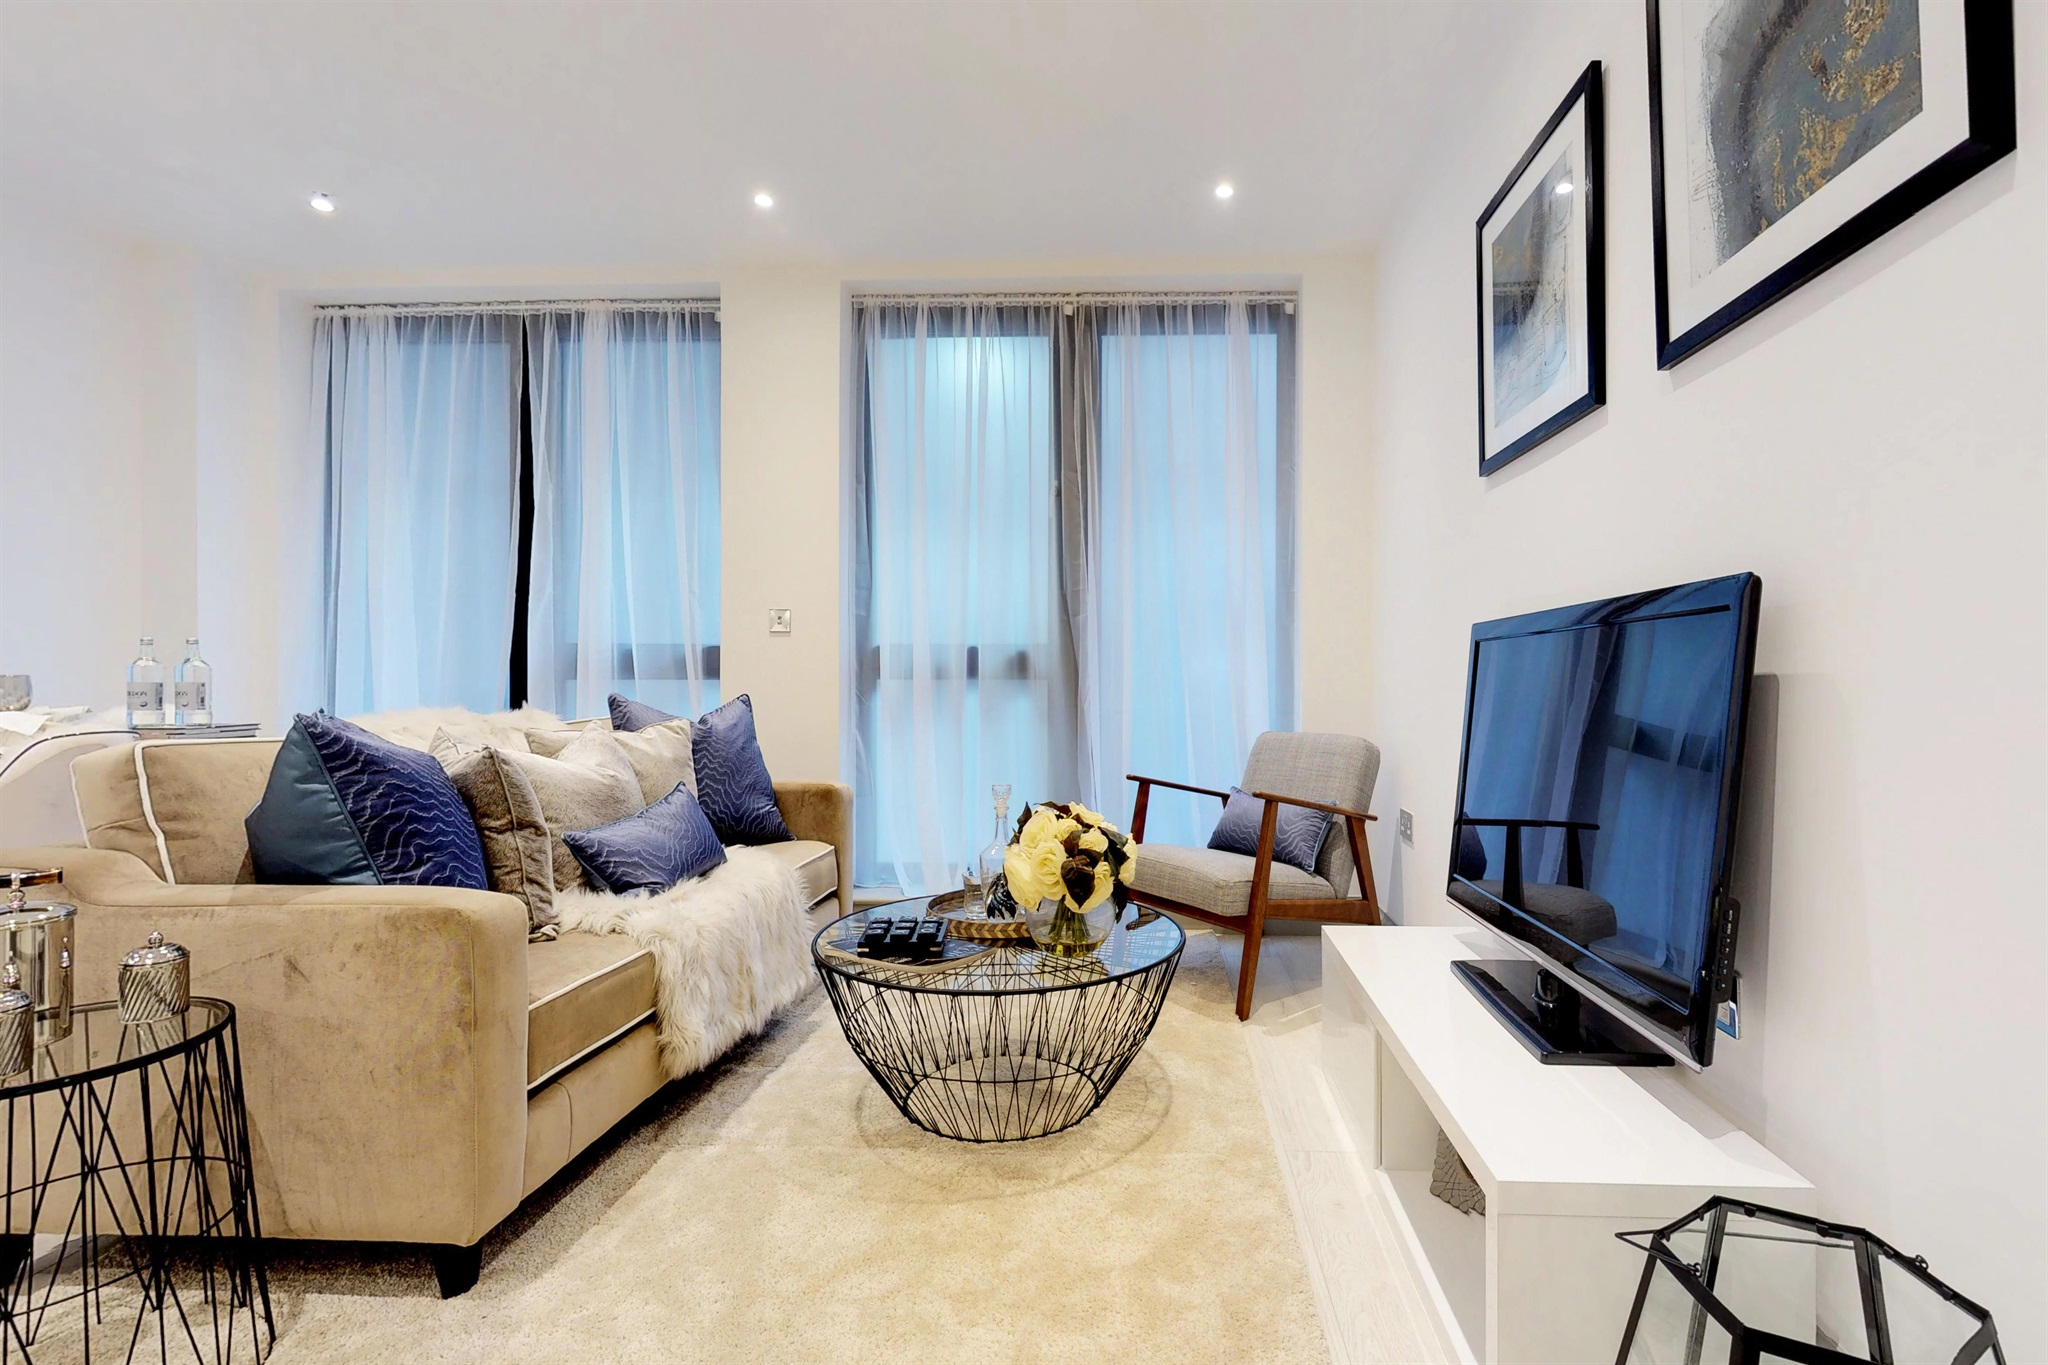 2 Bedroom Flat For Sale In Brighton Road Surbiton Kt6 London